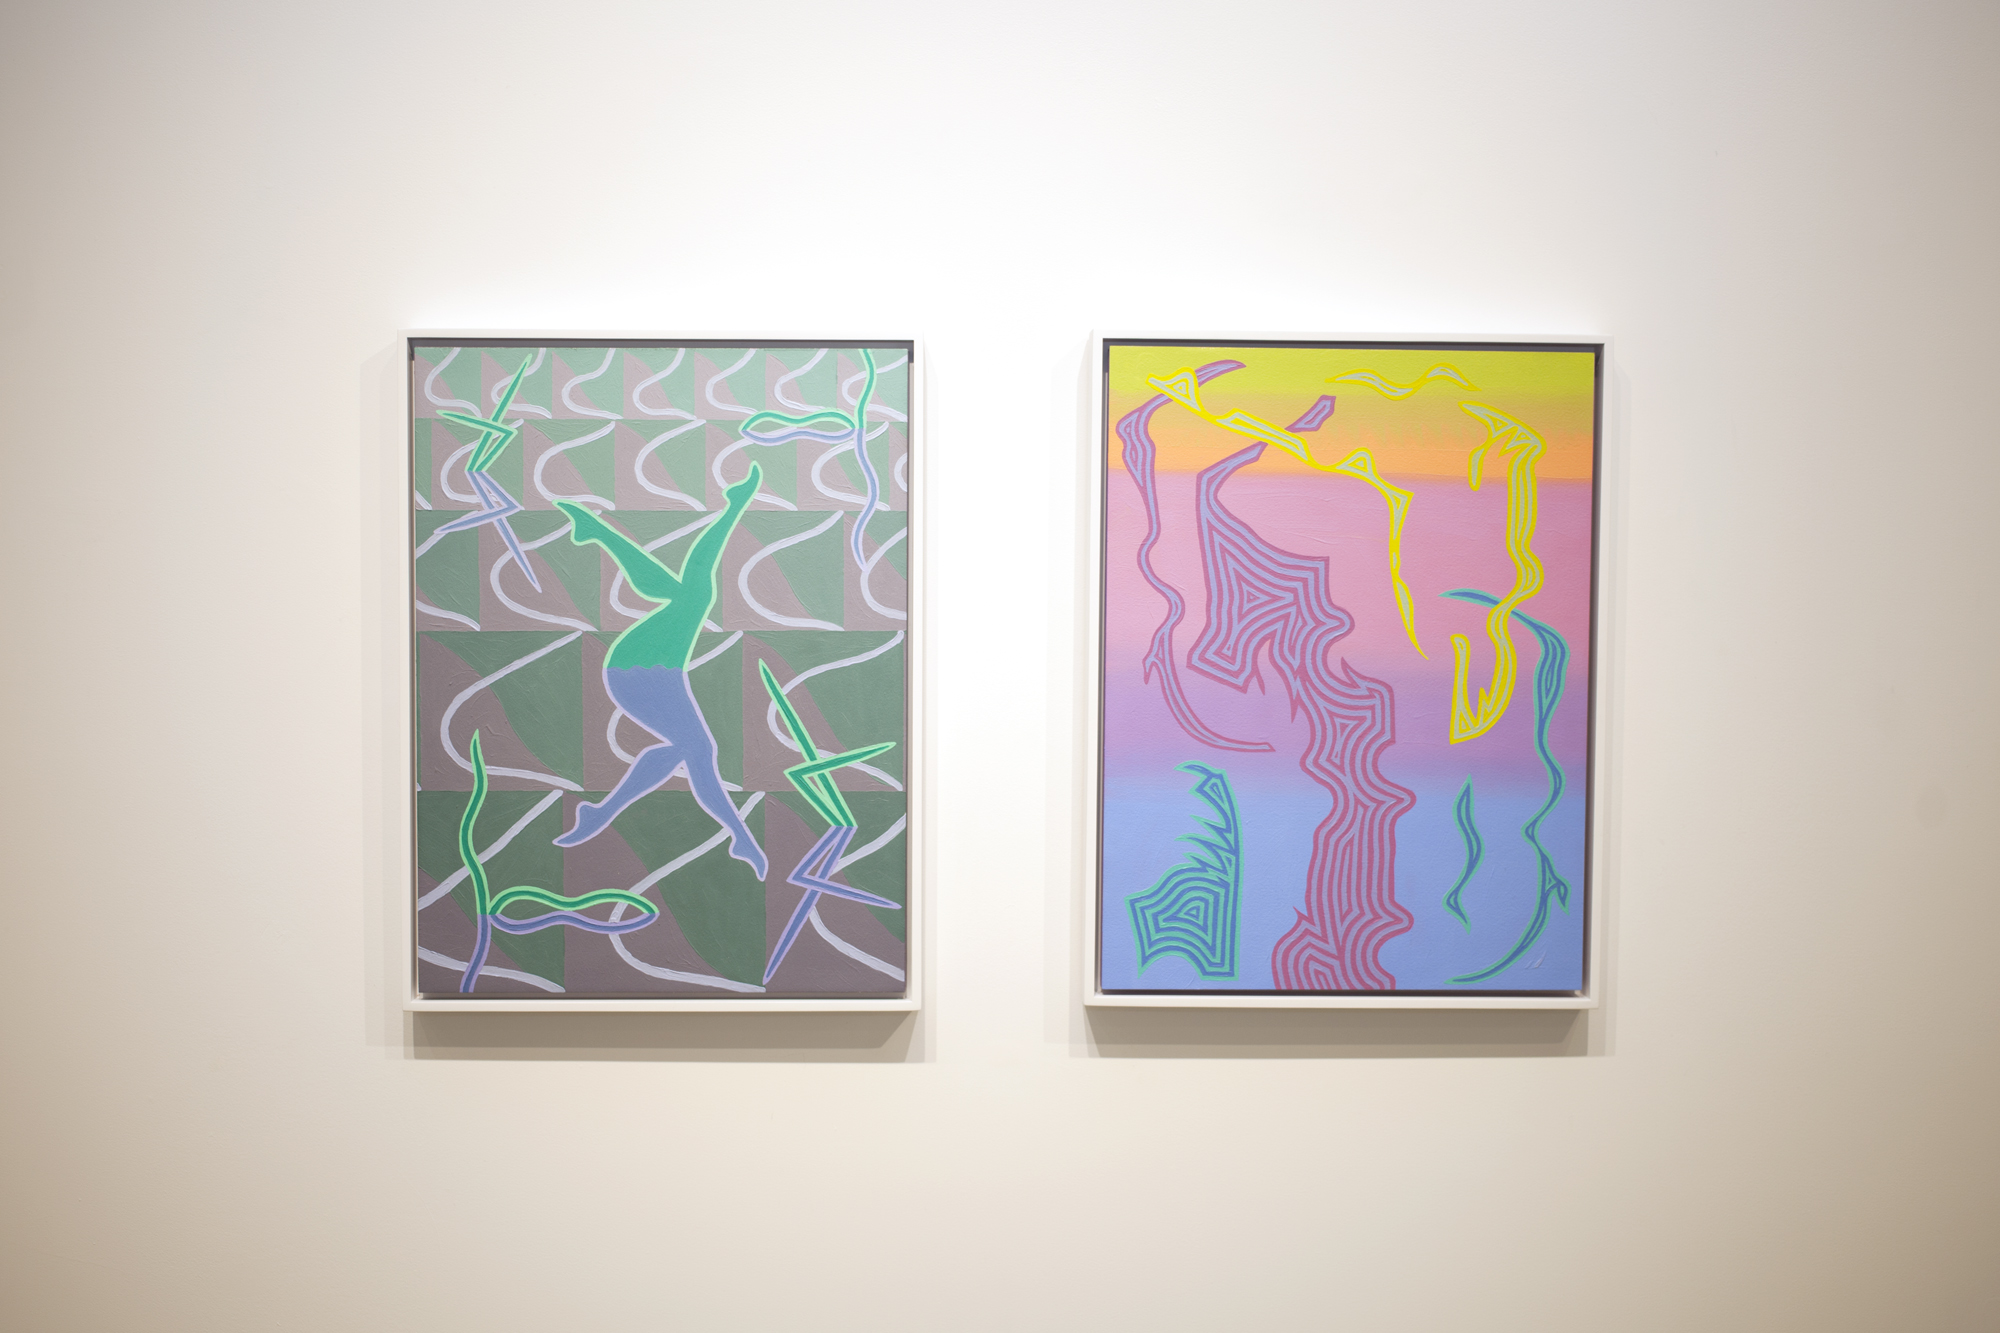 Left to right: Caetlynn Booth,  Synchronized Mirror II , 2018, oil on paper, 17 x 13 inches framed Caetlynn Booth,  Sunrise Study 1 , 2019, oil on paper, 17 x 13 inches framed